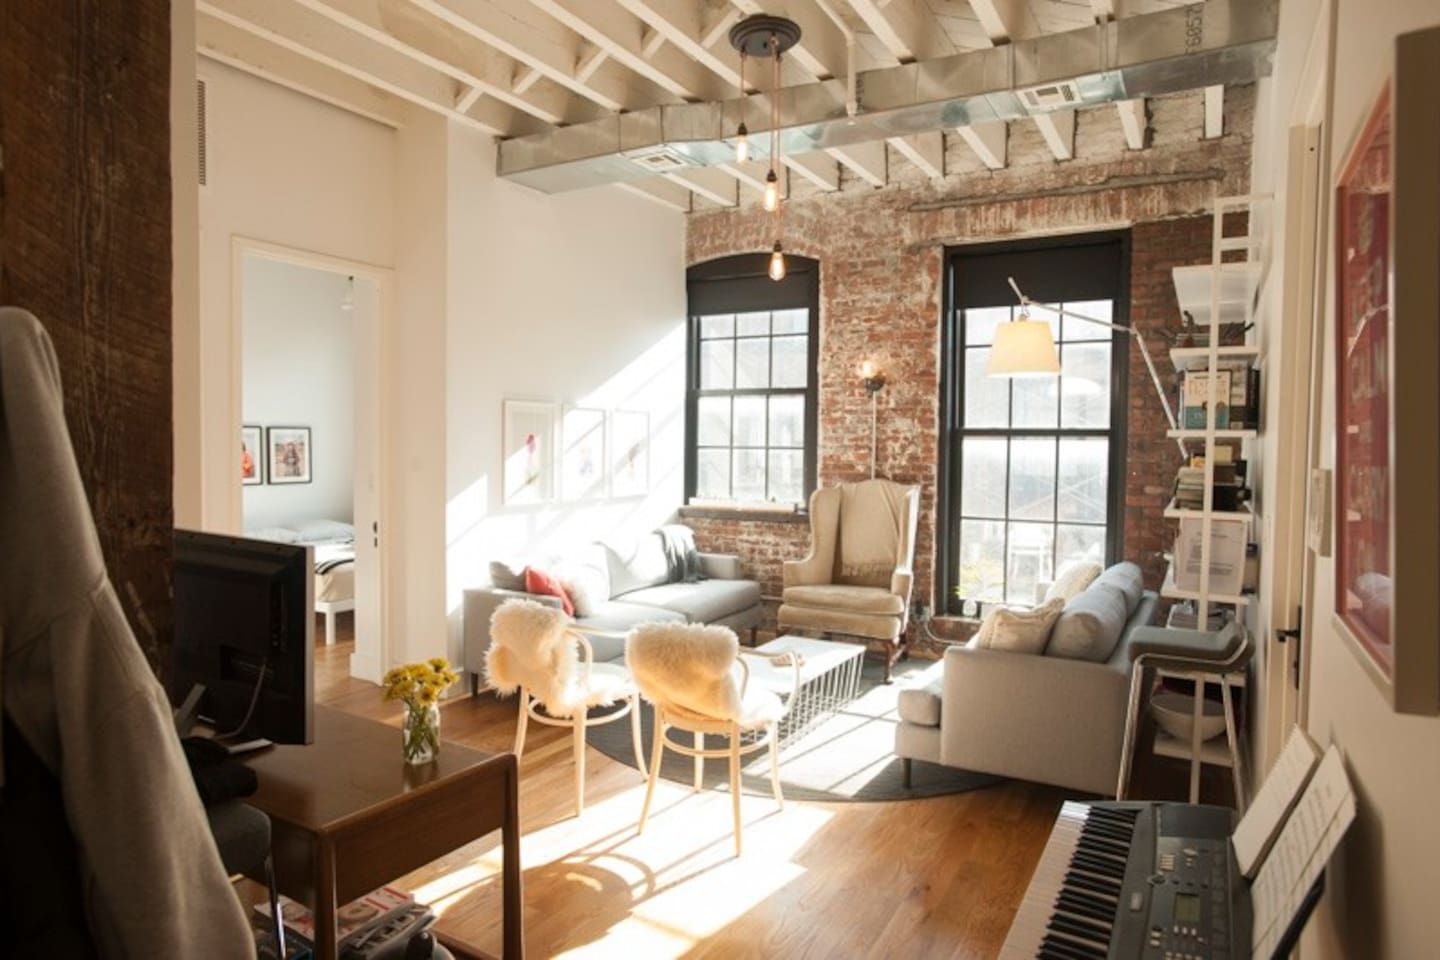 Stylish Loft Center Williamsburg Apartments For Rent In Brooklyn